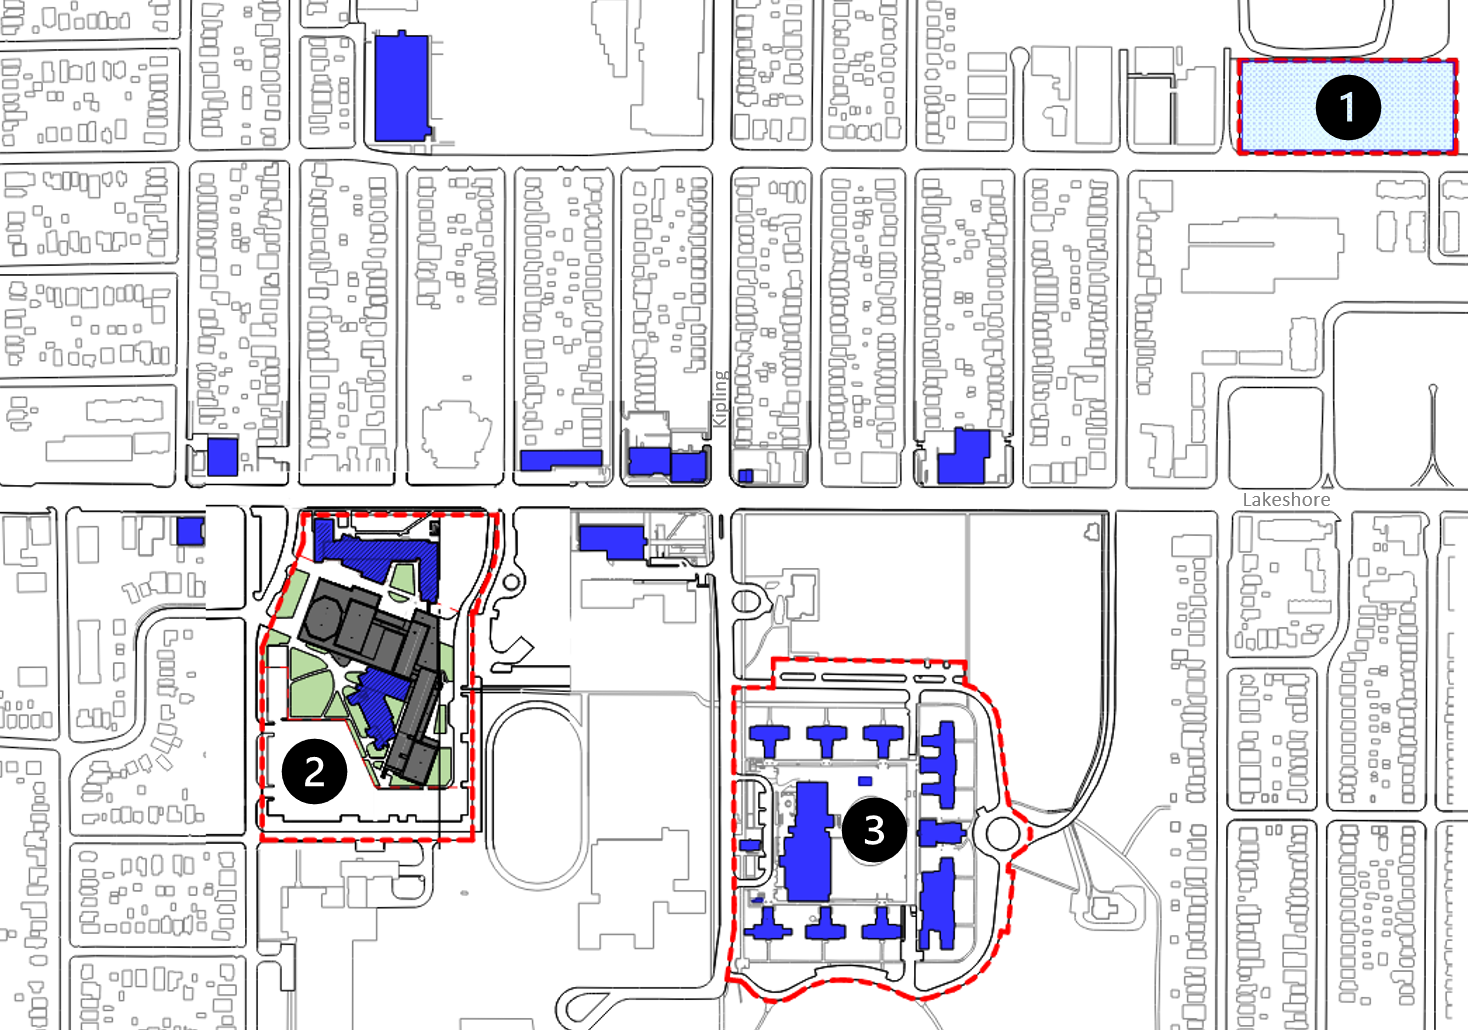 Map of the the Lakeshore campus showing locations relevent to the Cultural Hub